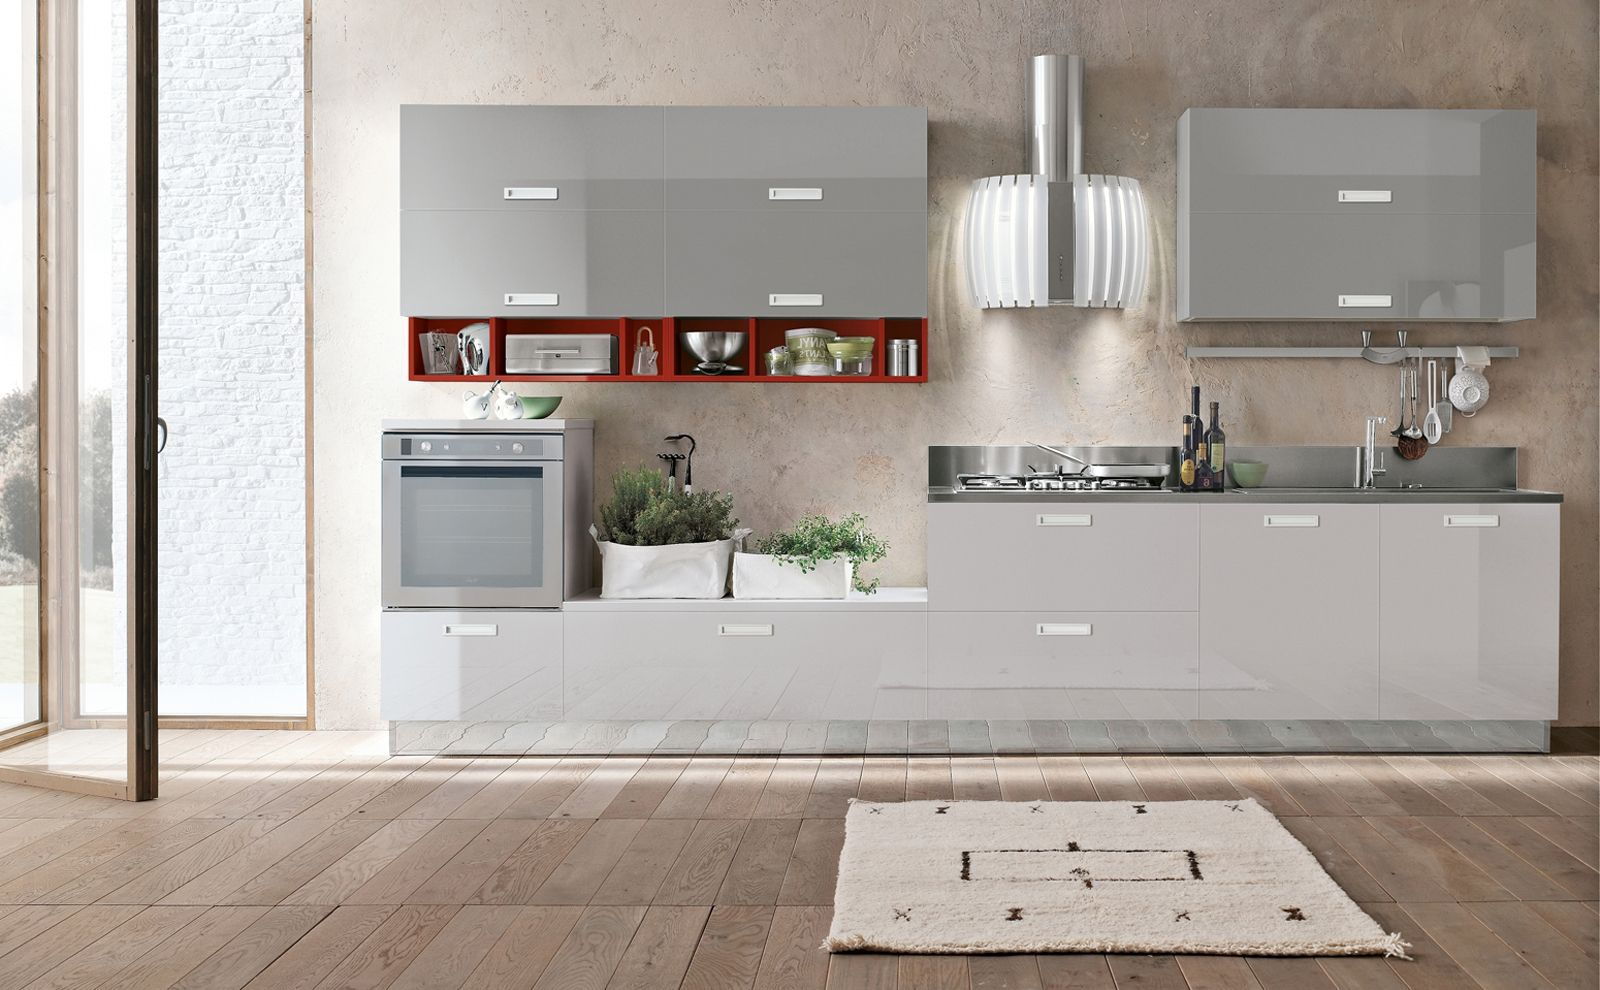 Beautiful Stosa Cucine Moderne Photos - Design & Ideas 2017 - candp.us